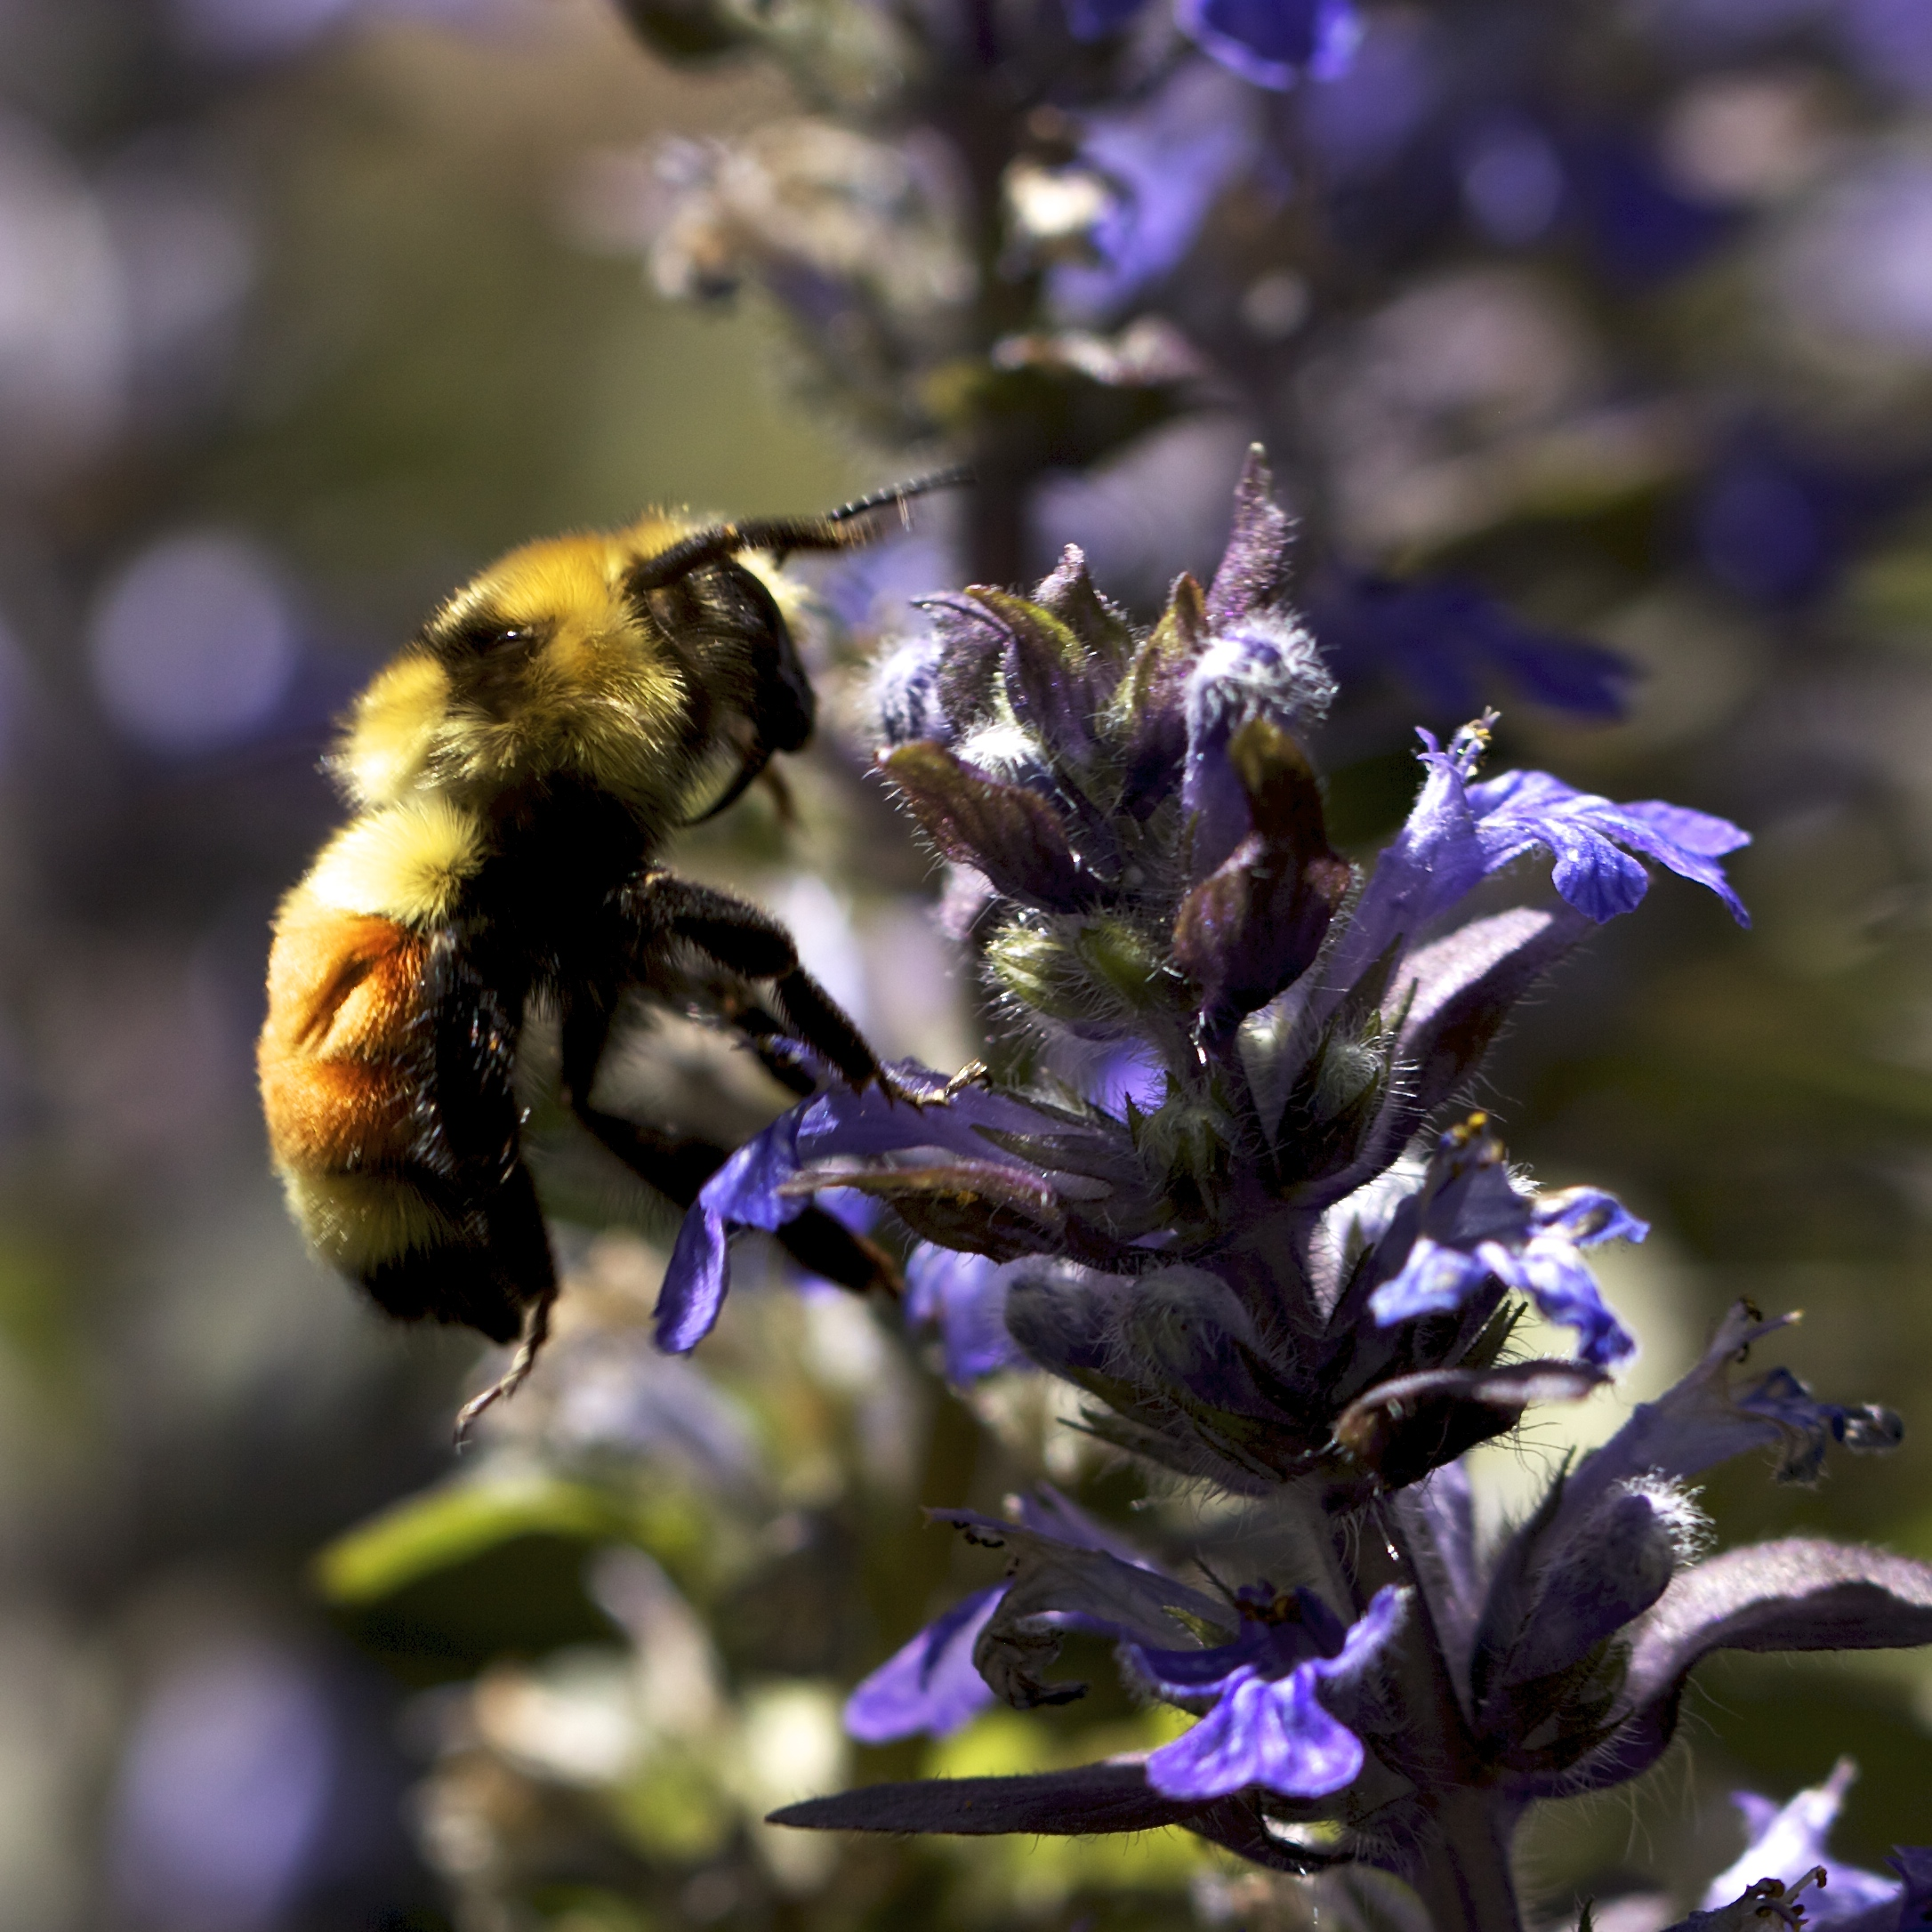 All the bumblebees are all over the Ajuga blooms.